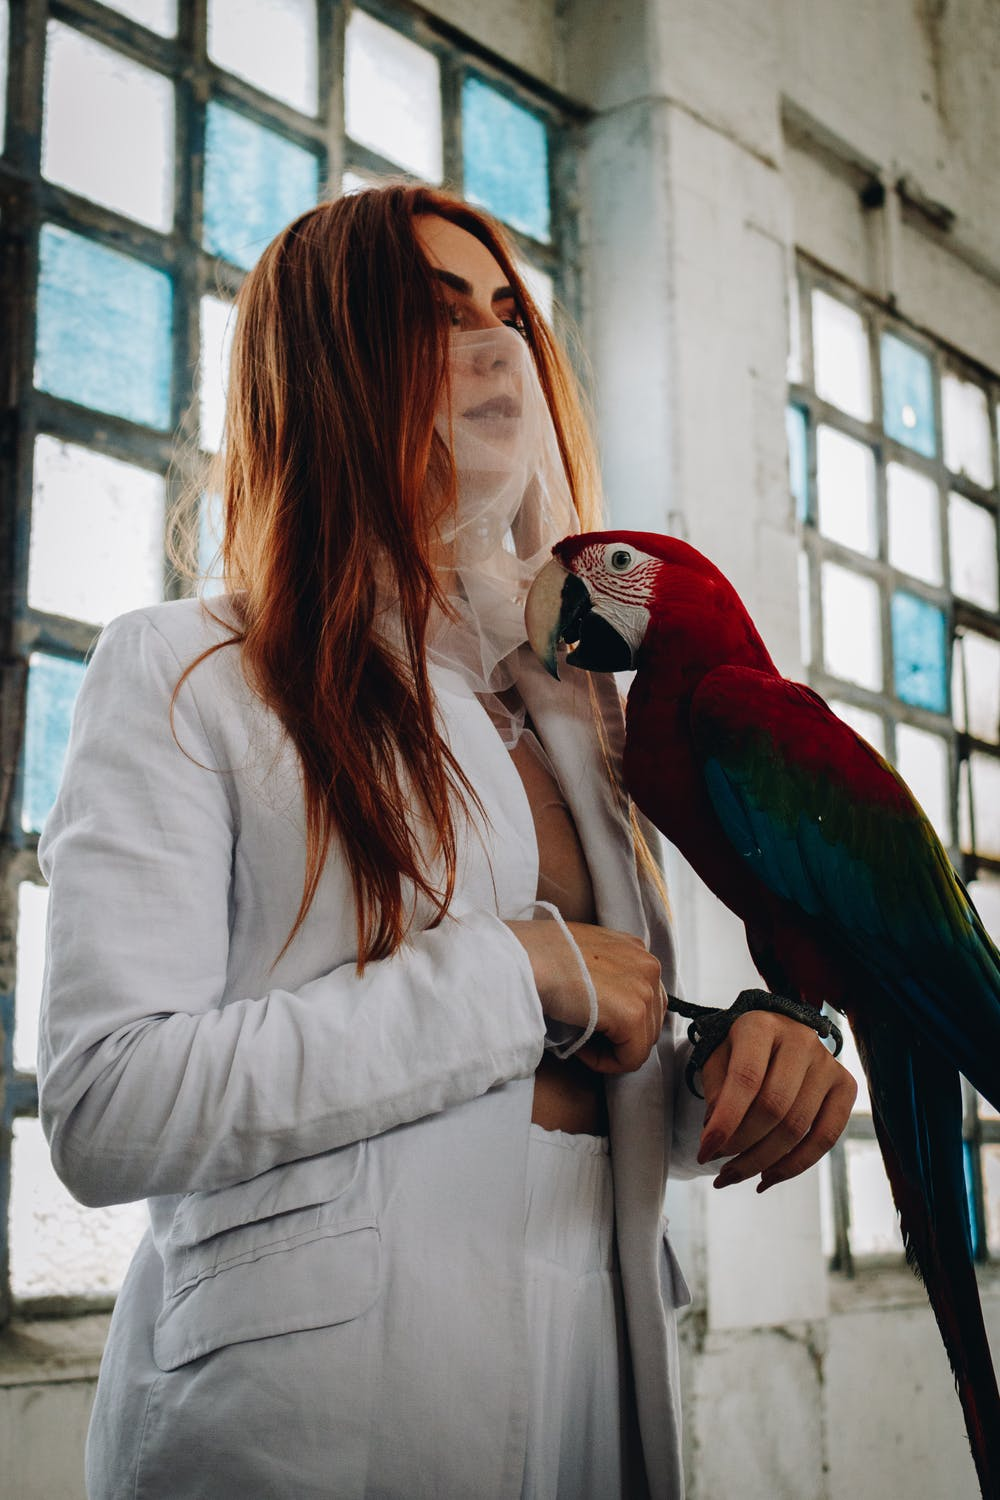 A Macaw perching on woman's hand   Photo: Pexels